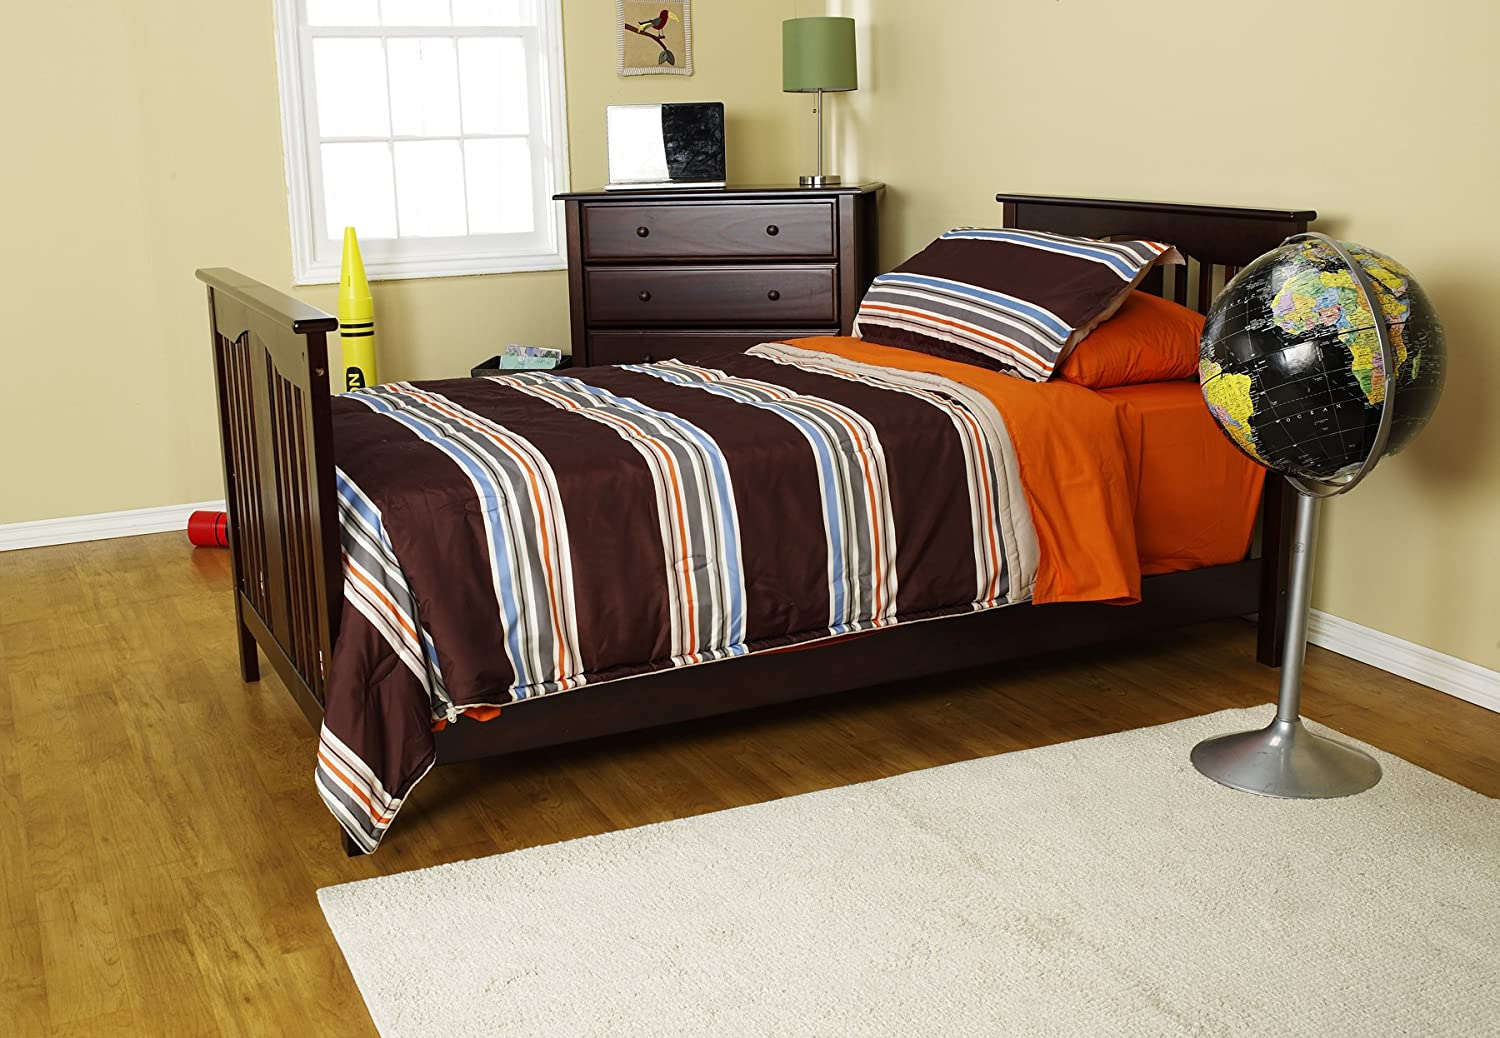 amazoncom davinci hidden hardware full size bed conversion kit espresso baby